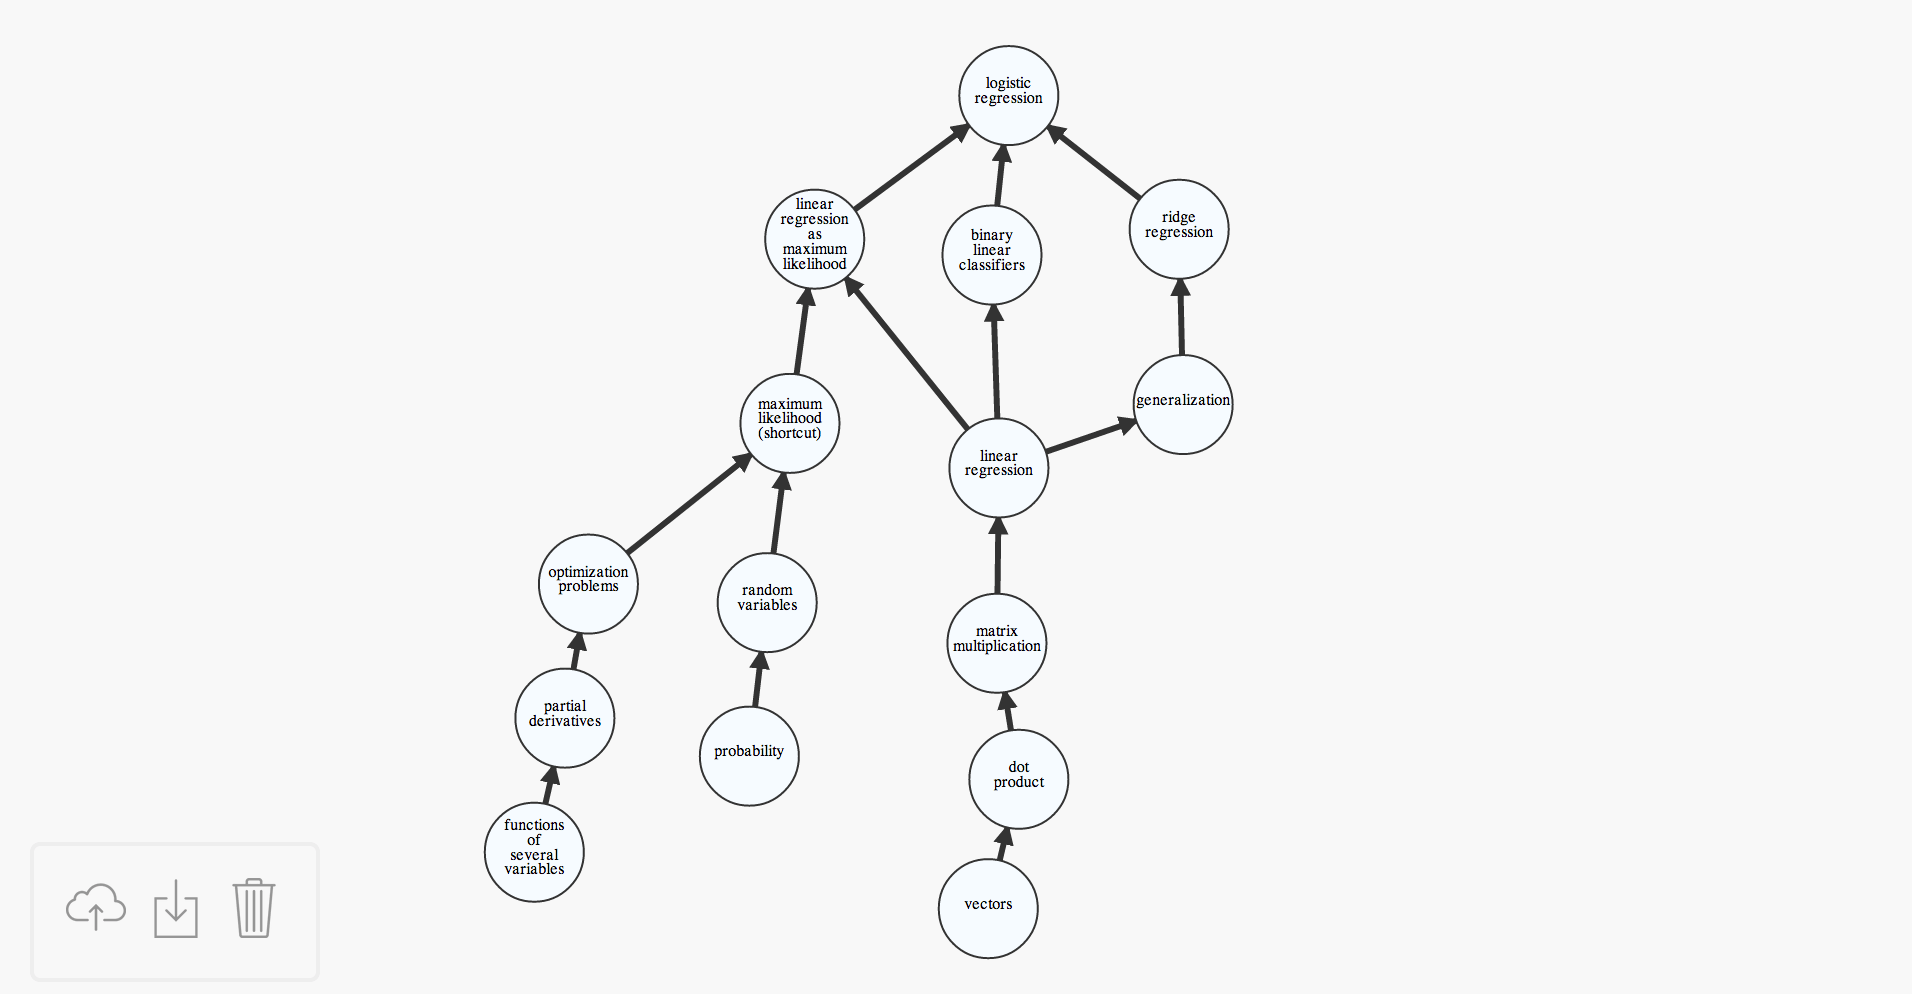 Interactive tool for creating directed graphs using d3.js